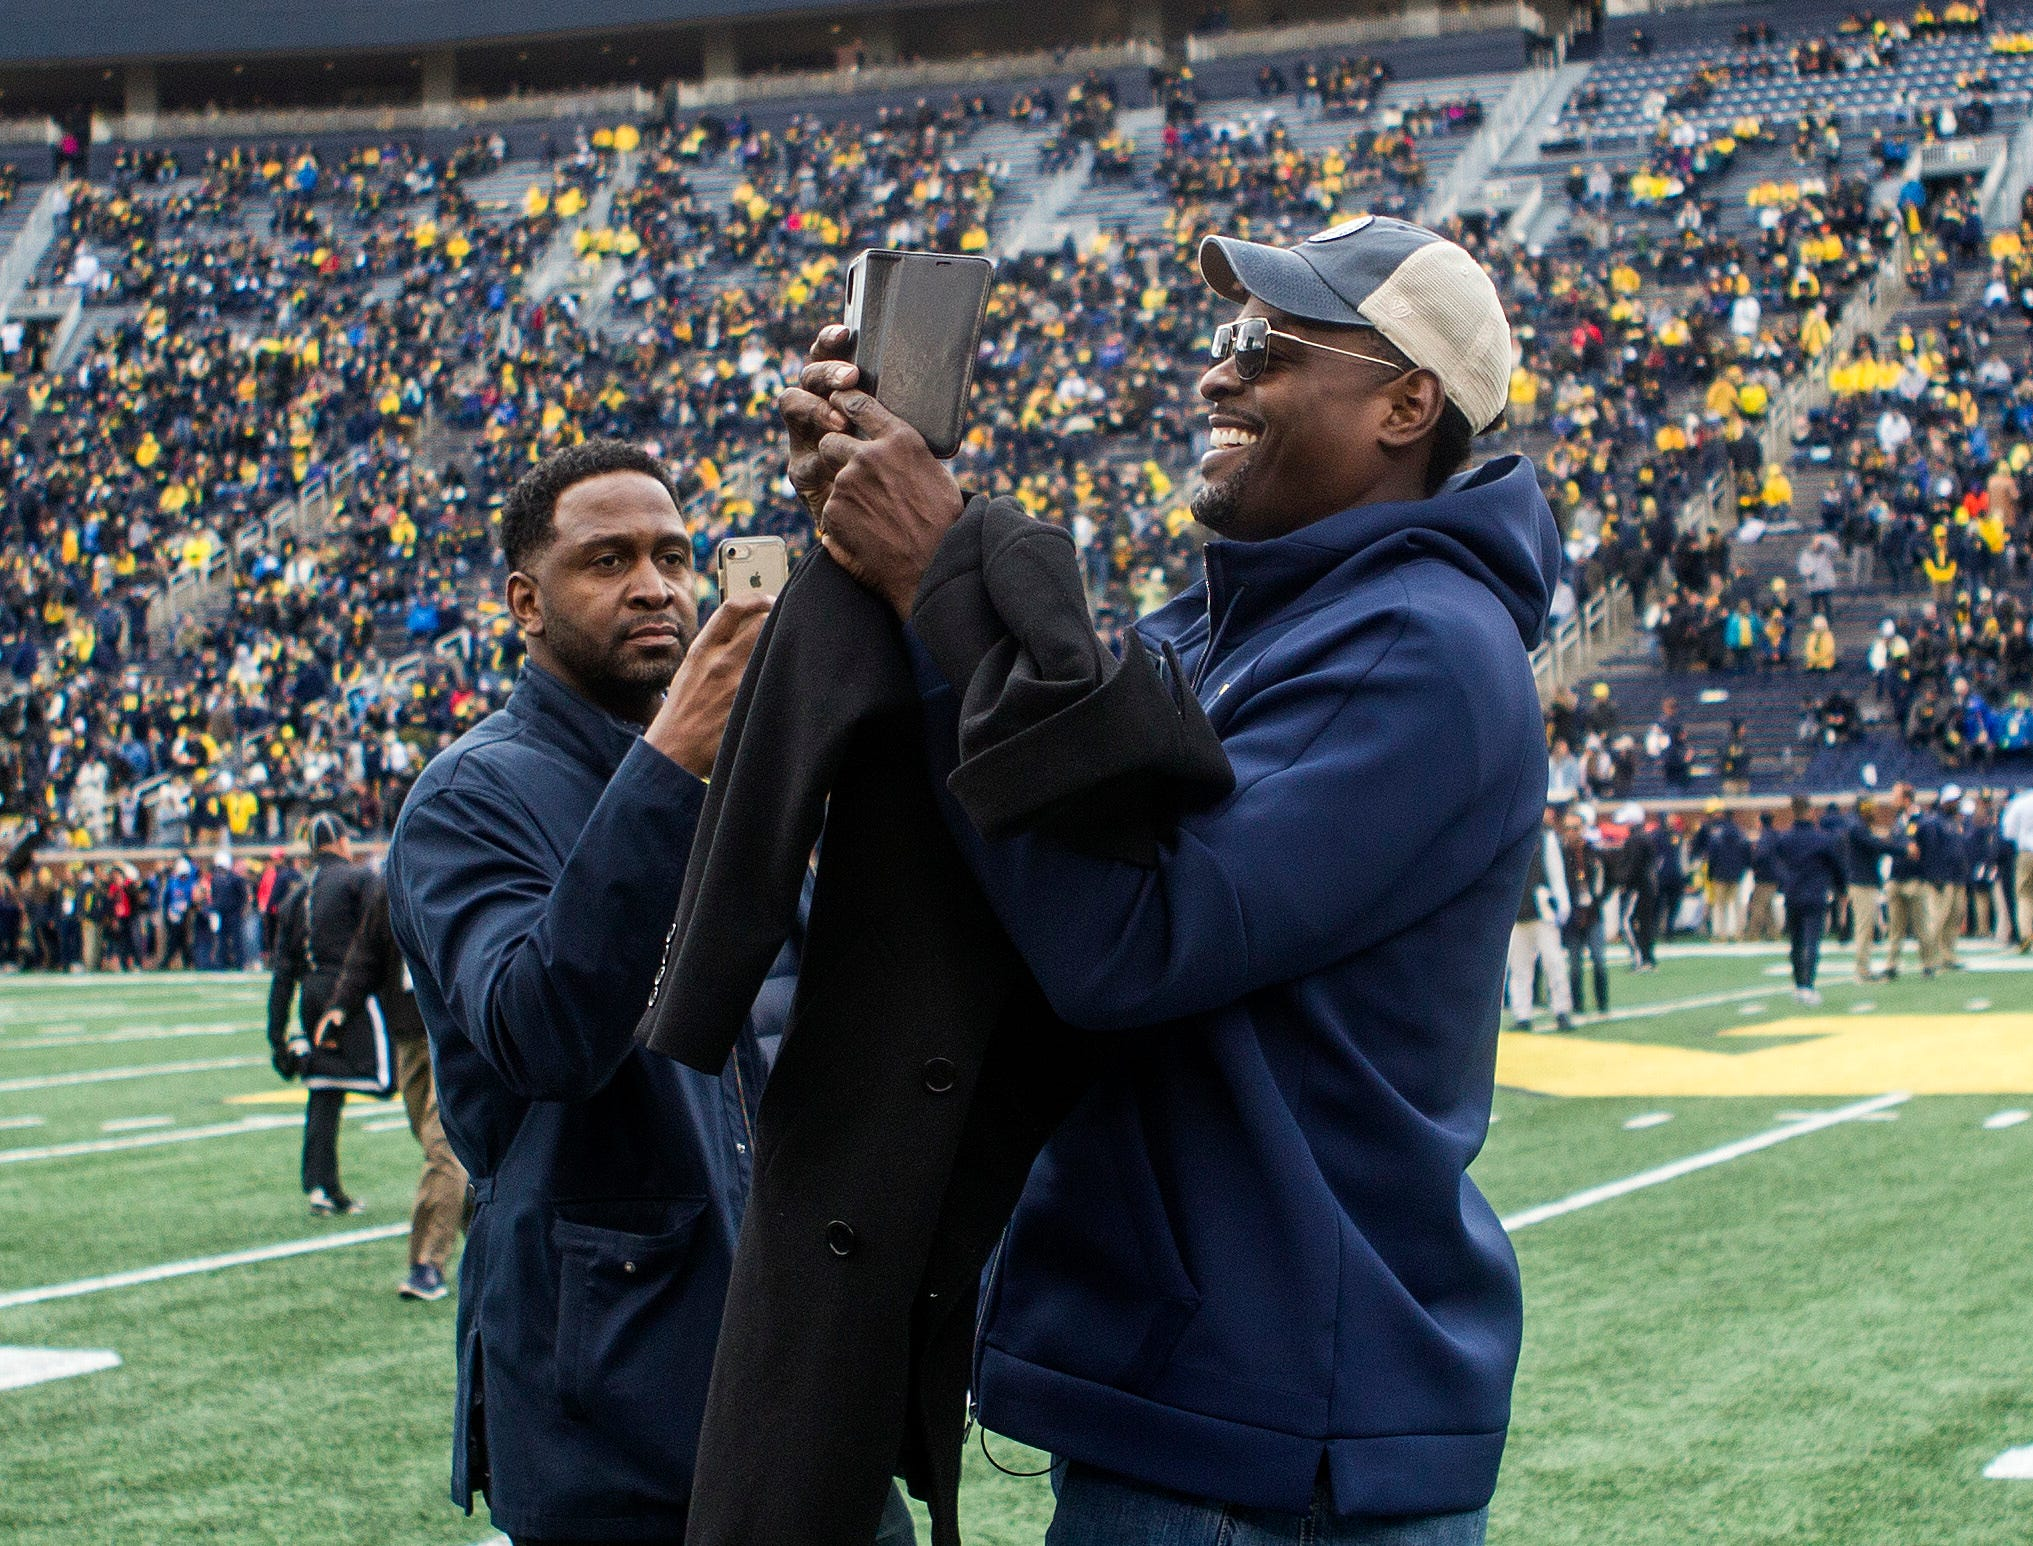 Former Michigan basketball player Chris Webber, center, takes photos with his phone on the Michigan Stadium field prior to an NCAA college football game against Penn State in Ann Arbor, Mich., Saturday, Nov. 3, 2018. Michigan is making Webber an honorary captain for the game. (AP Photo/Tony Ding)